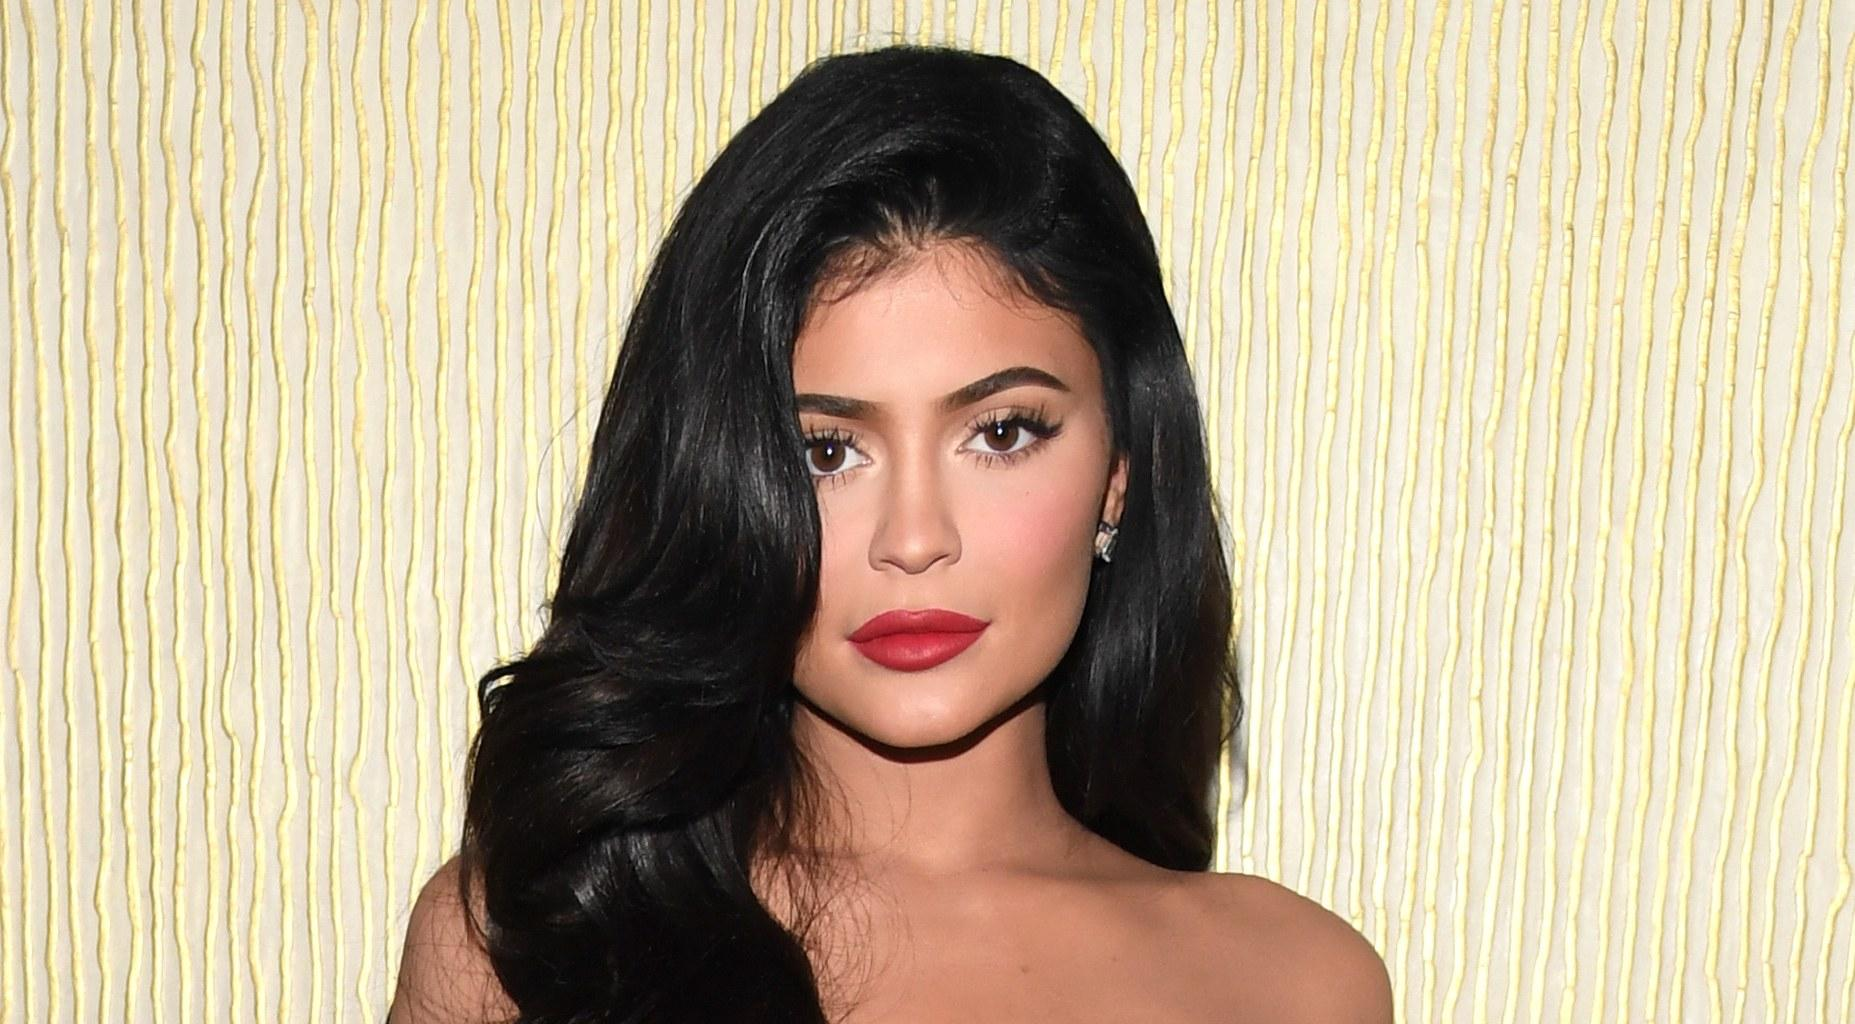 KUWK: Kylie Jenner Puts Her Incredible Abs On Display In New Video